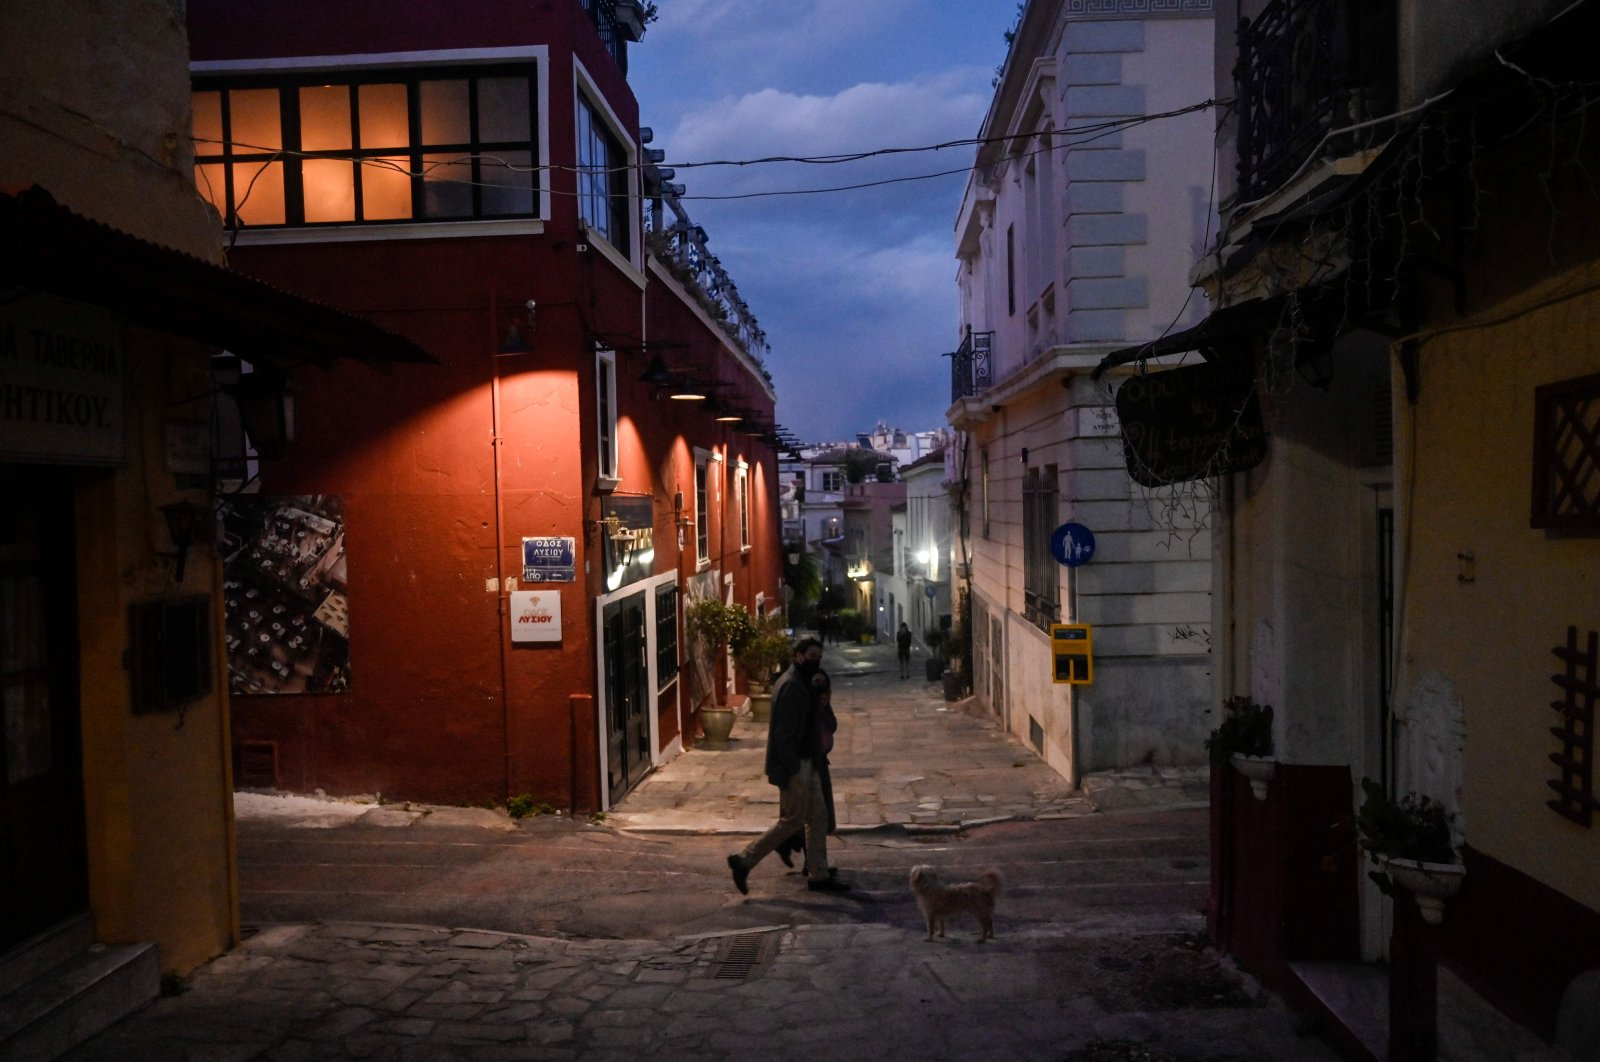 Pedestrians walk past closed businesses and restaurants at Athens' touristic Plaka area during a second national lockdown in Greece aimed at curbing the spread of the COVID-19 pandemic, Jan. 13, 2021.  (AFP Photo)